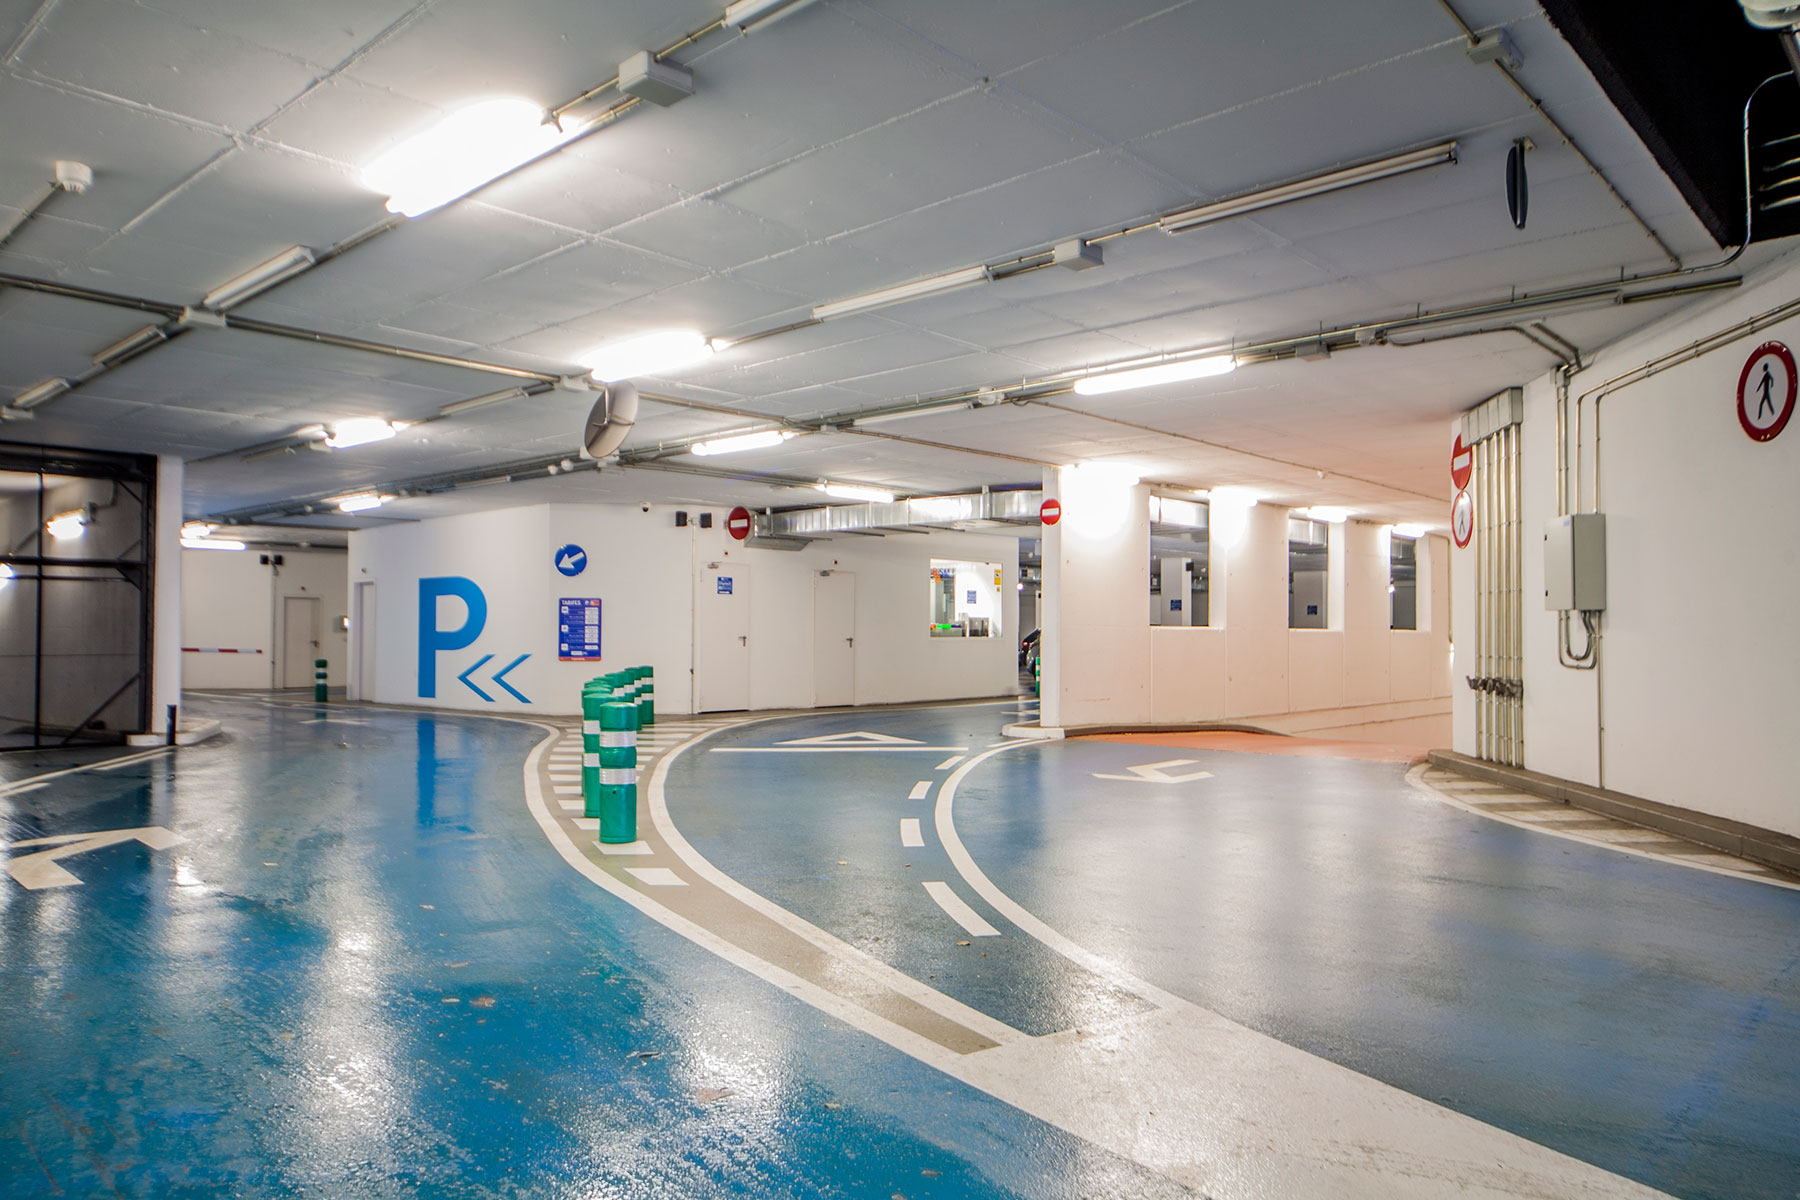 001_parking_cardenal_sentmenat_barcelona_location_bsm